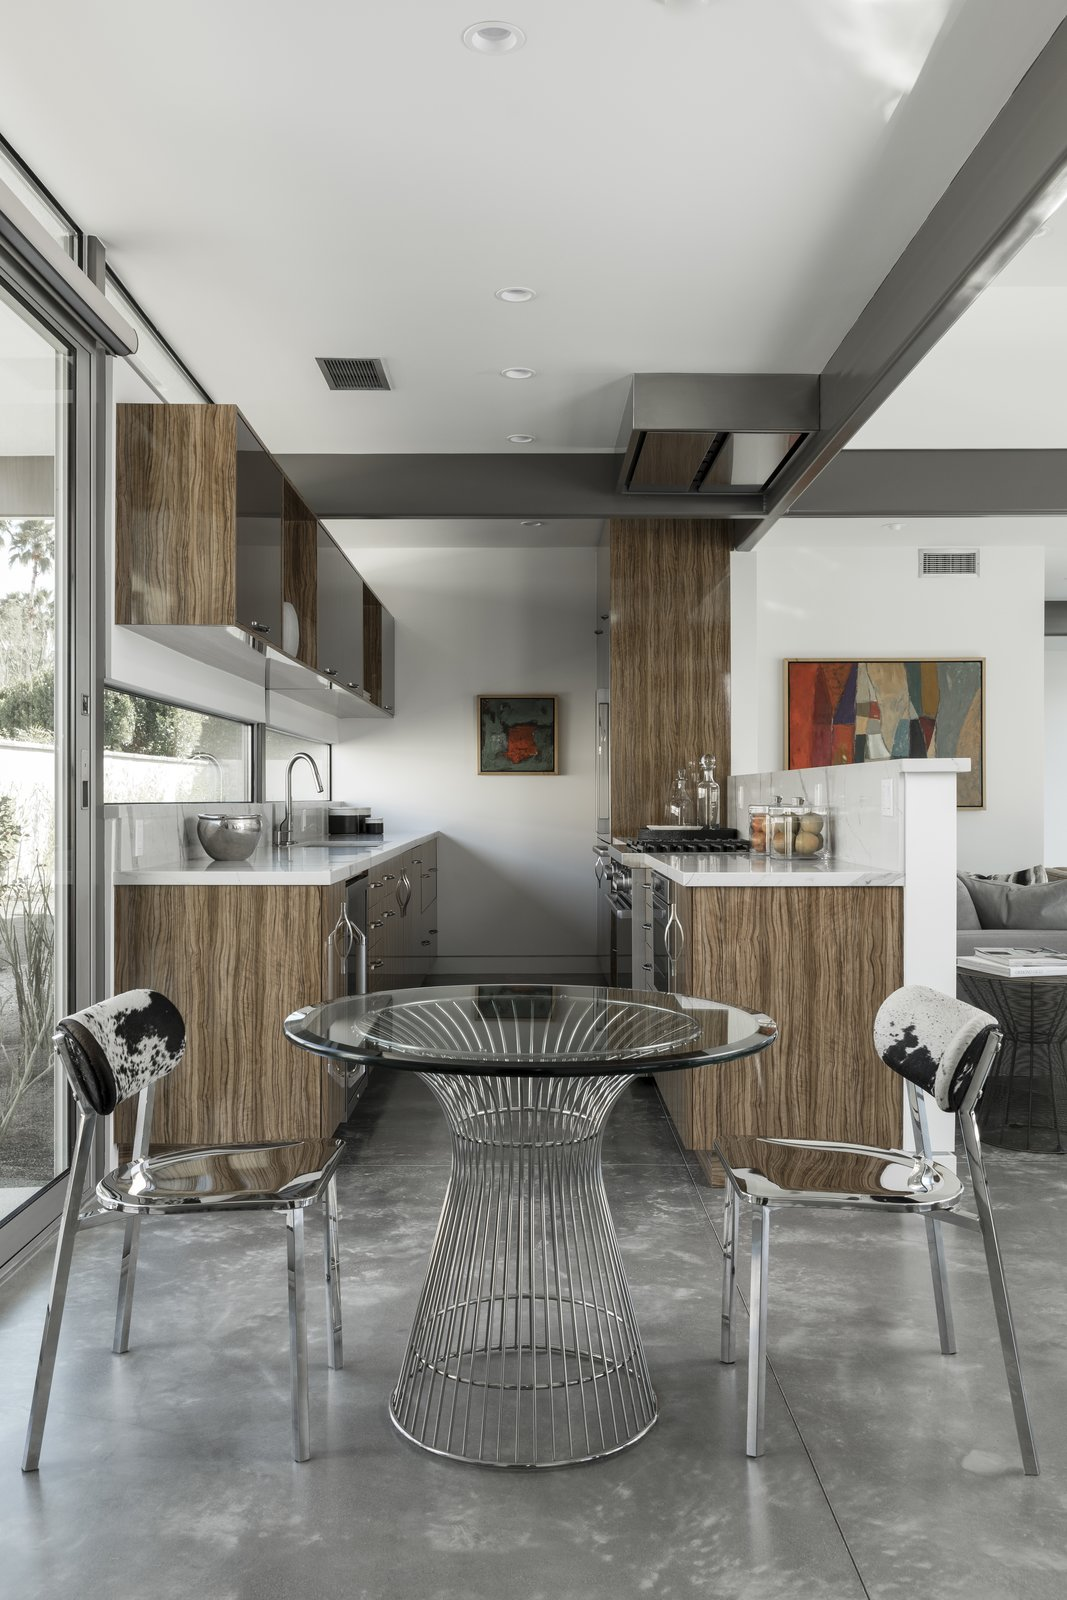 A contemporary kitchen with wood cabinetry provides an open, fluid cooking space.  The cooktop hood nestles perfectly against the structural framing.